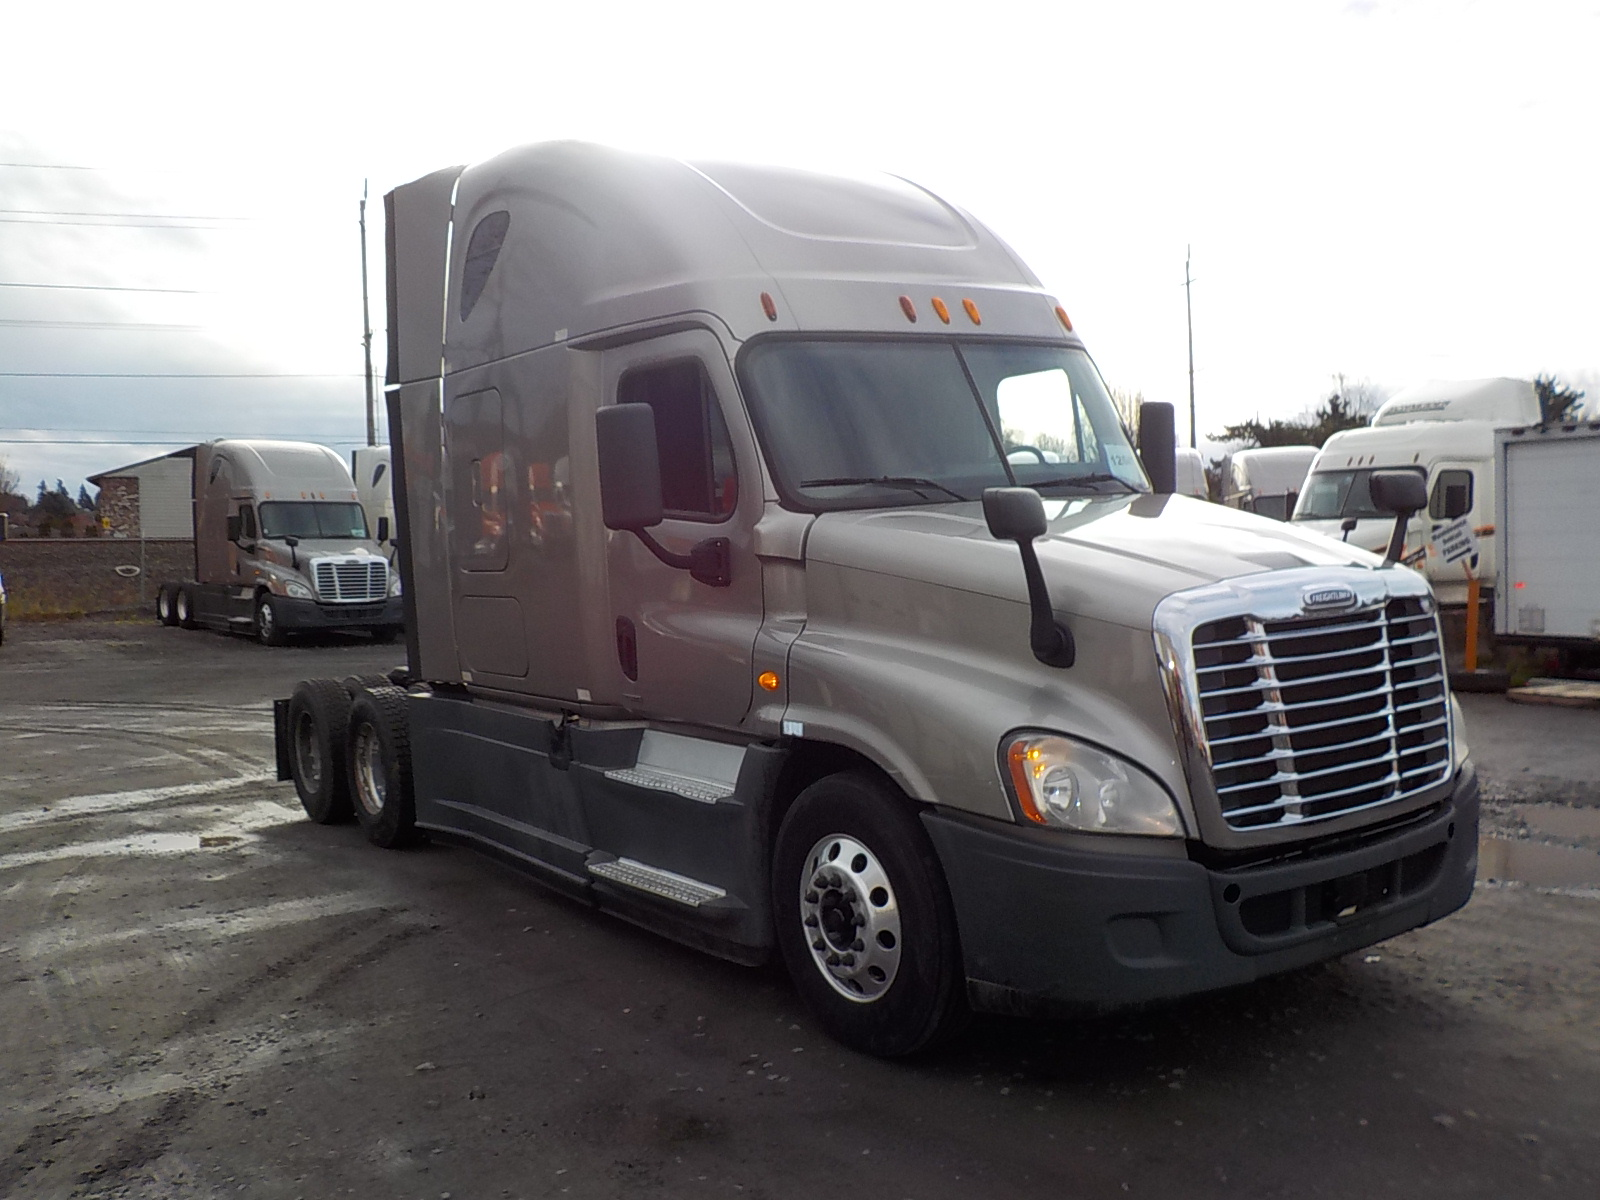 USED 2014 FREIGHTLINER CASCADIA SLEEPER TRUCK #85076